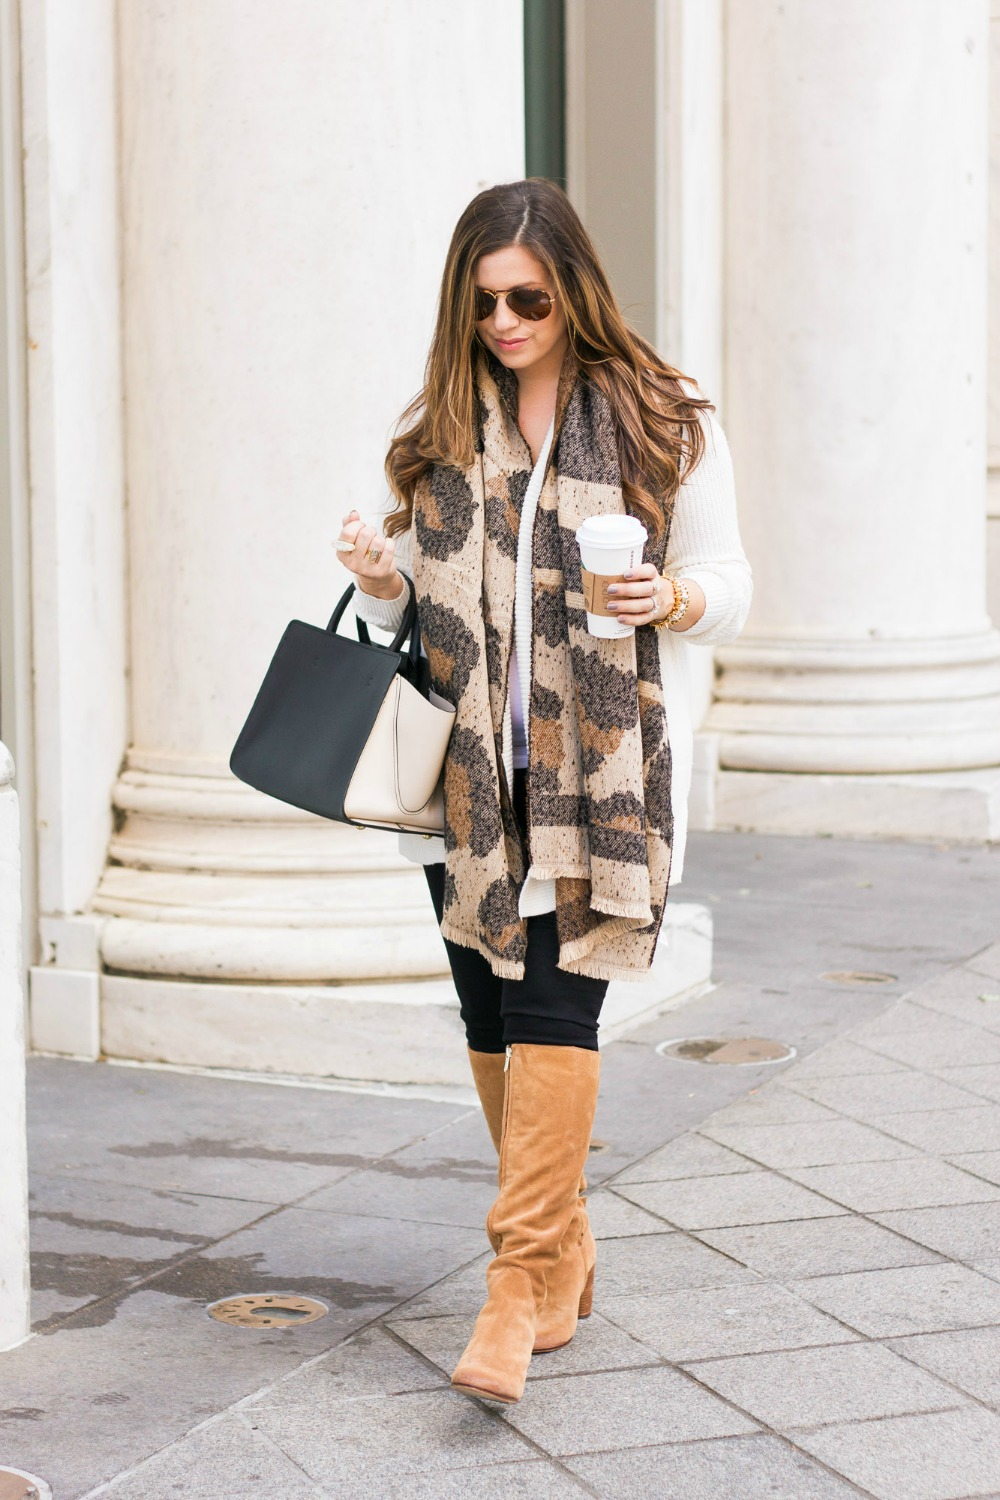 b78ea7940bef4 The Must Have  26 Leopard Scarf - Sunflowers and Stilettos